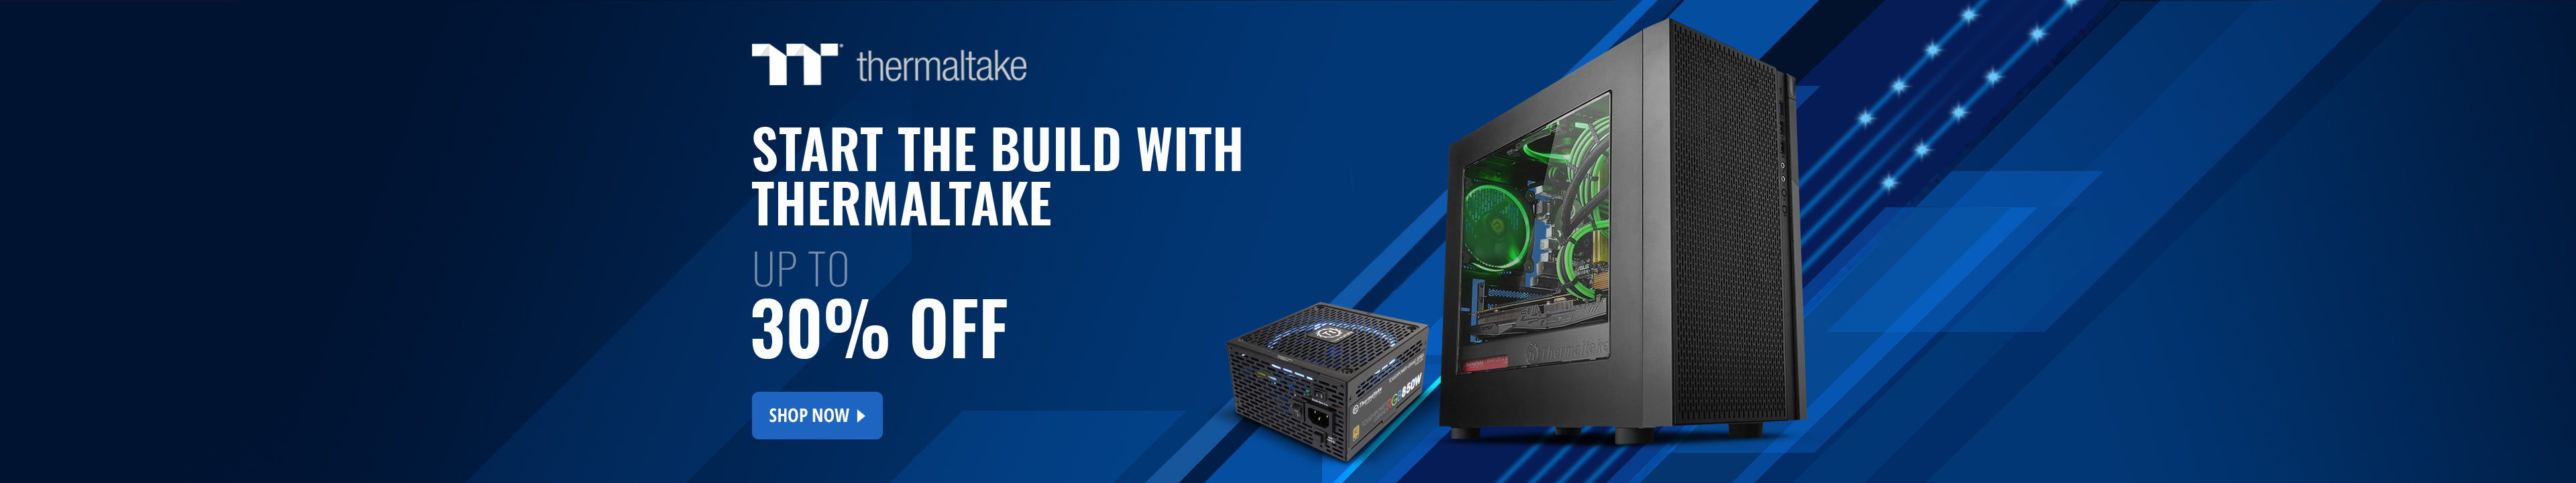 Start The Build with Thermaltake